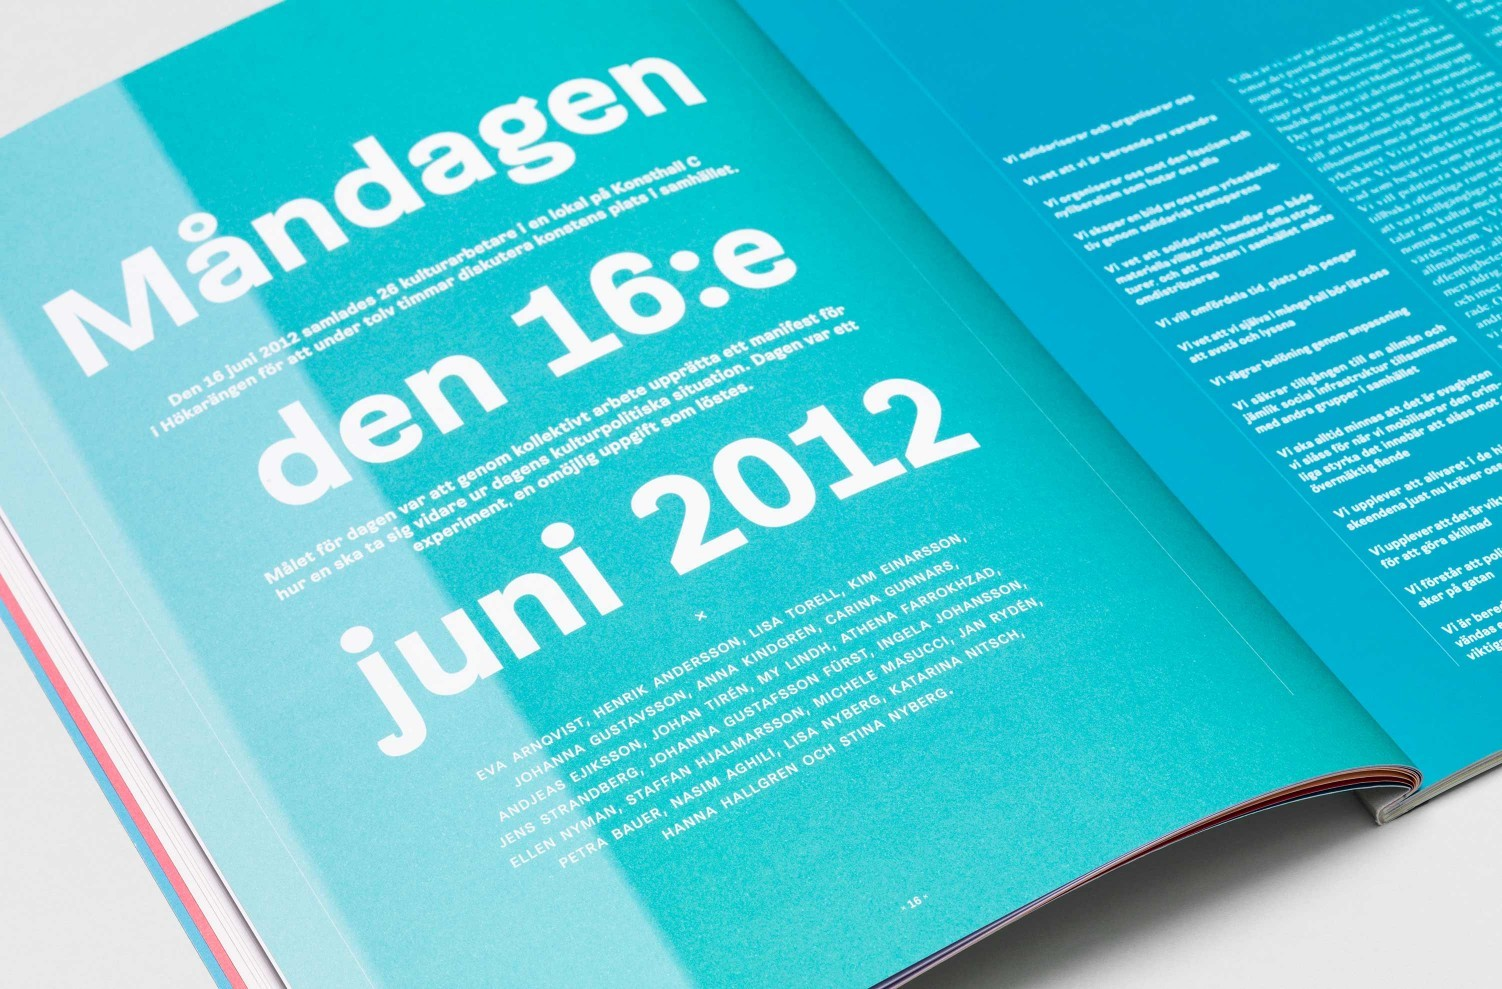 ritator_paletten_redesign_two_art_magazine_12%402x